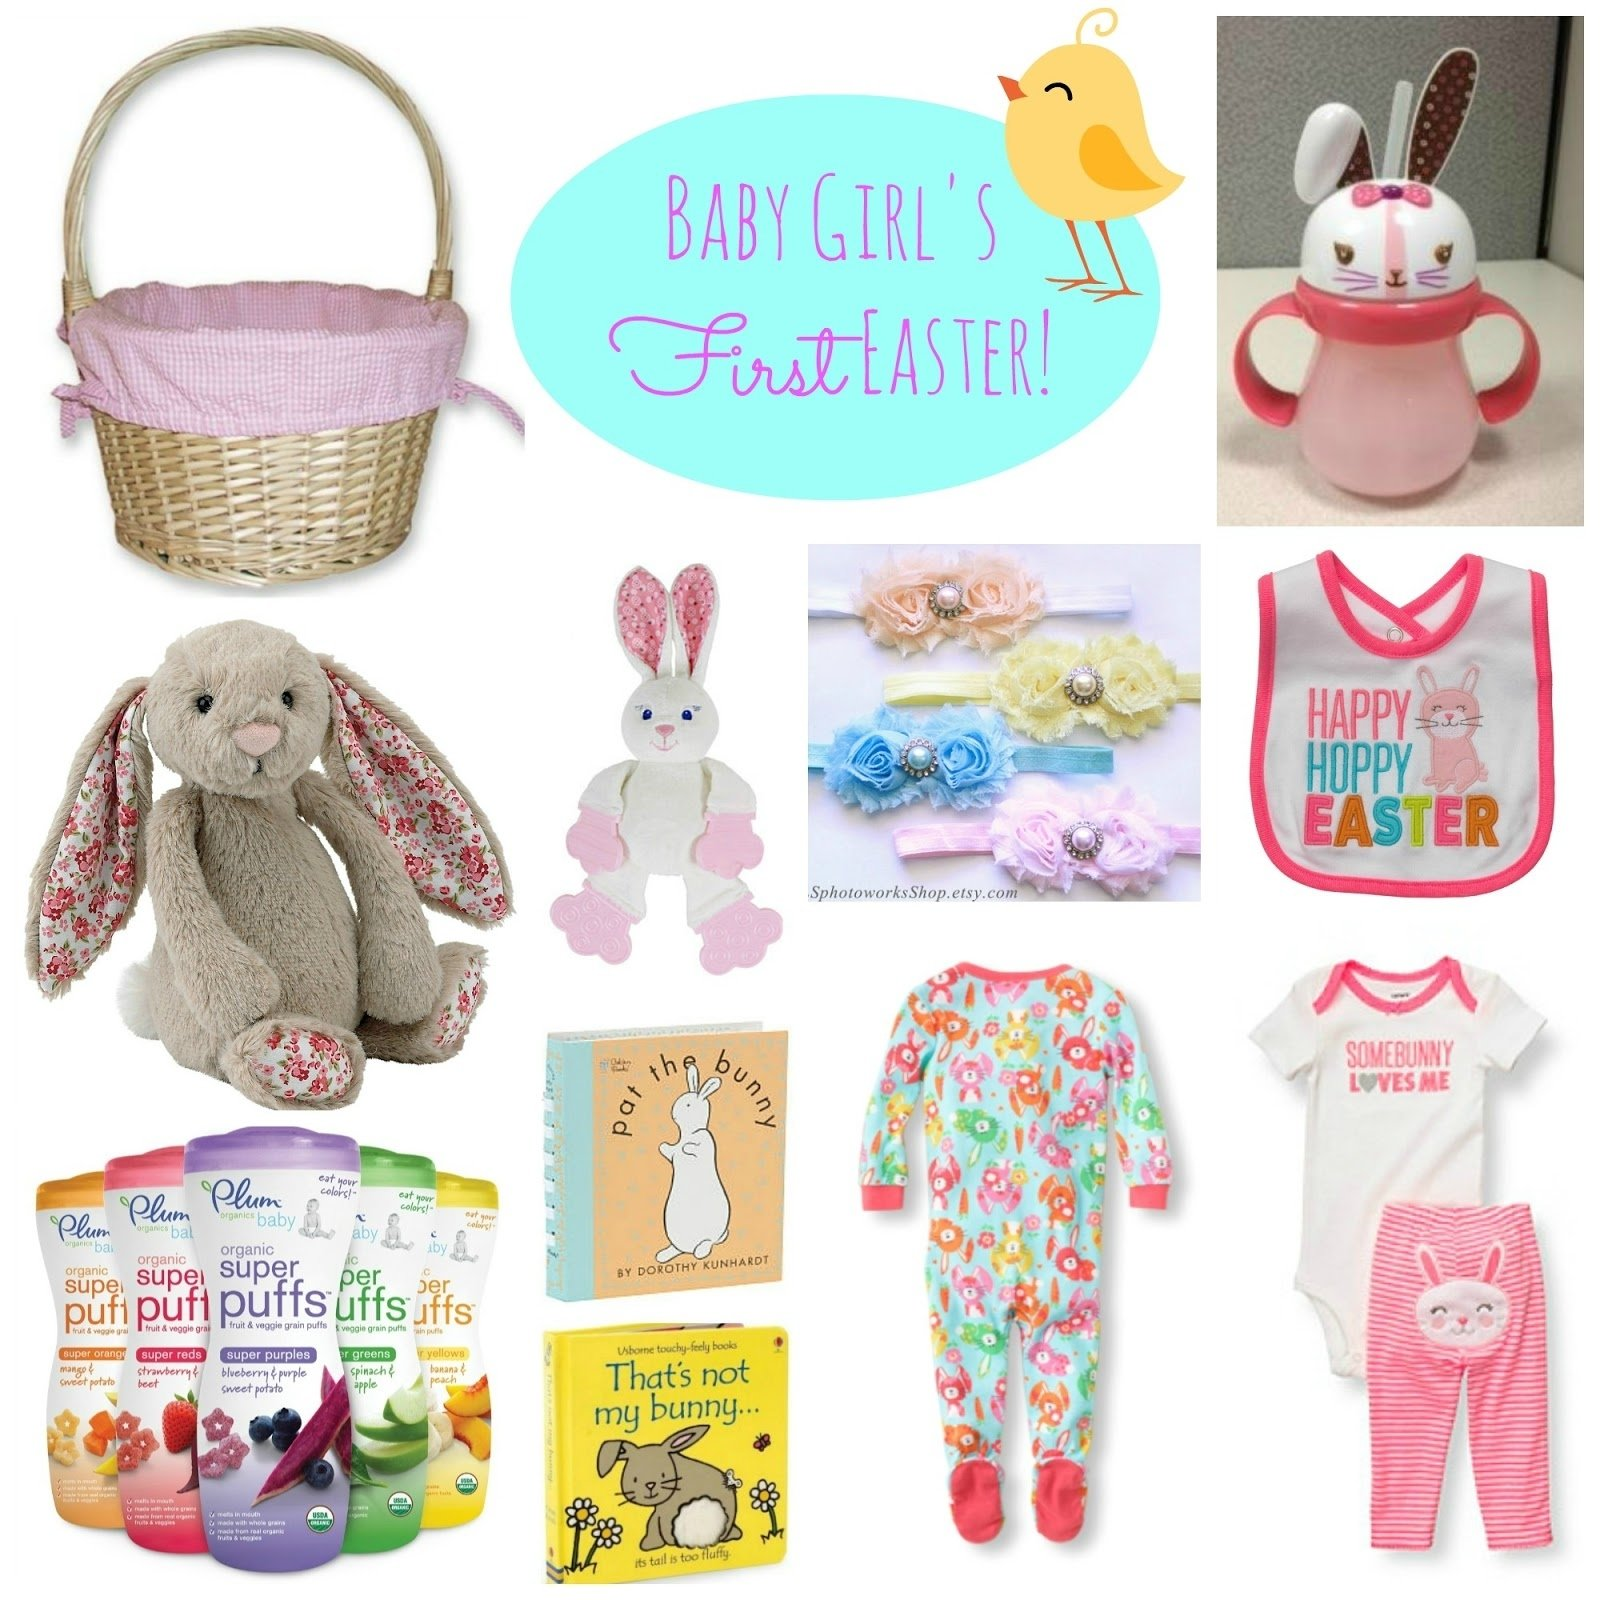 10 Stylish Baby First Easter Basket Ideas baby girls first easter basket ideas with links for purchasing